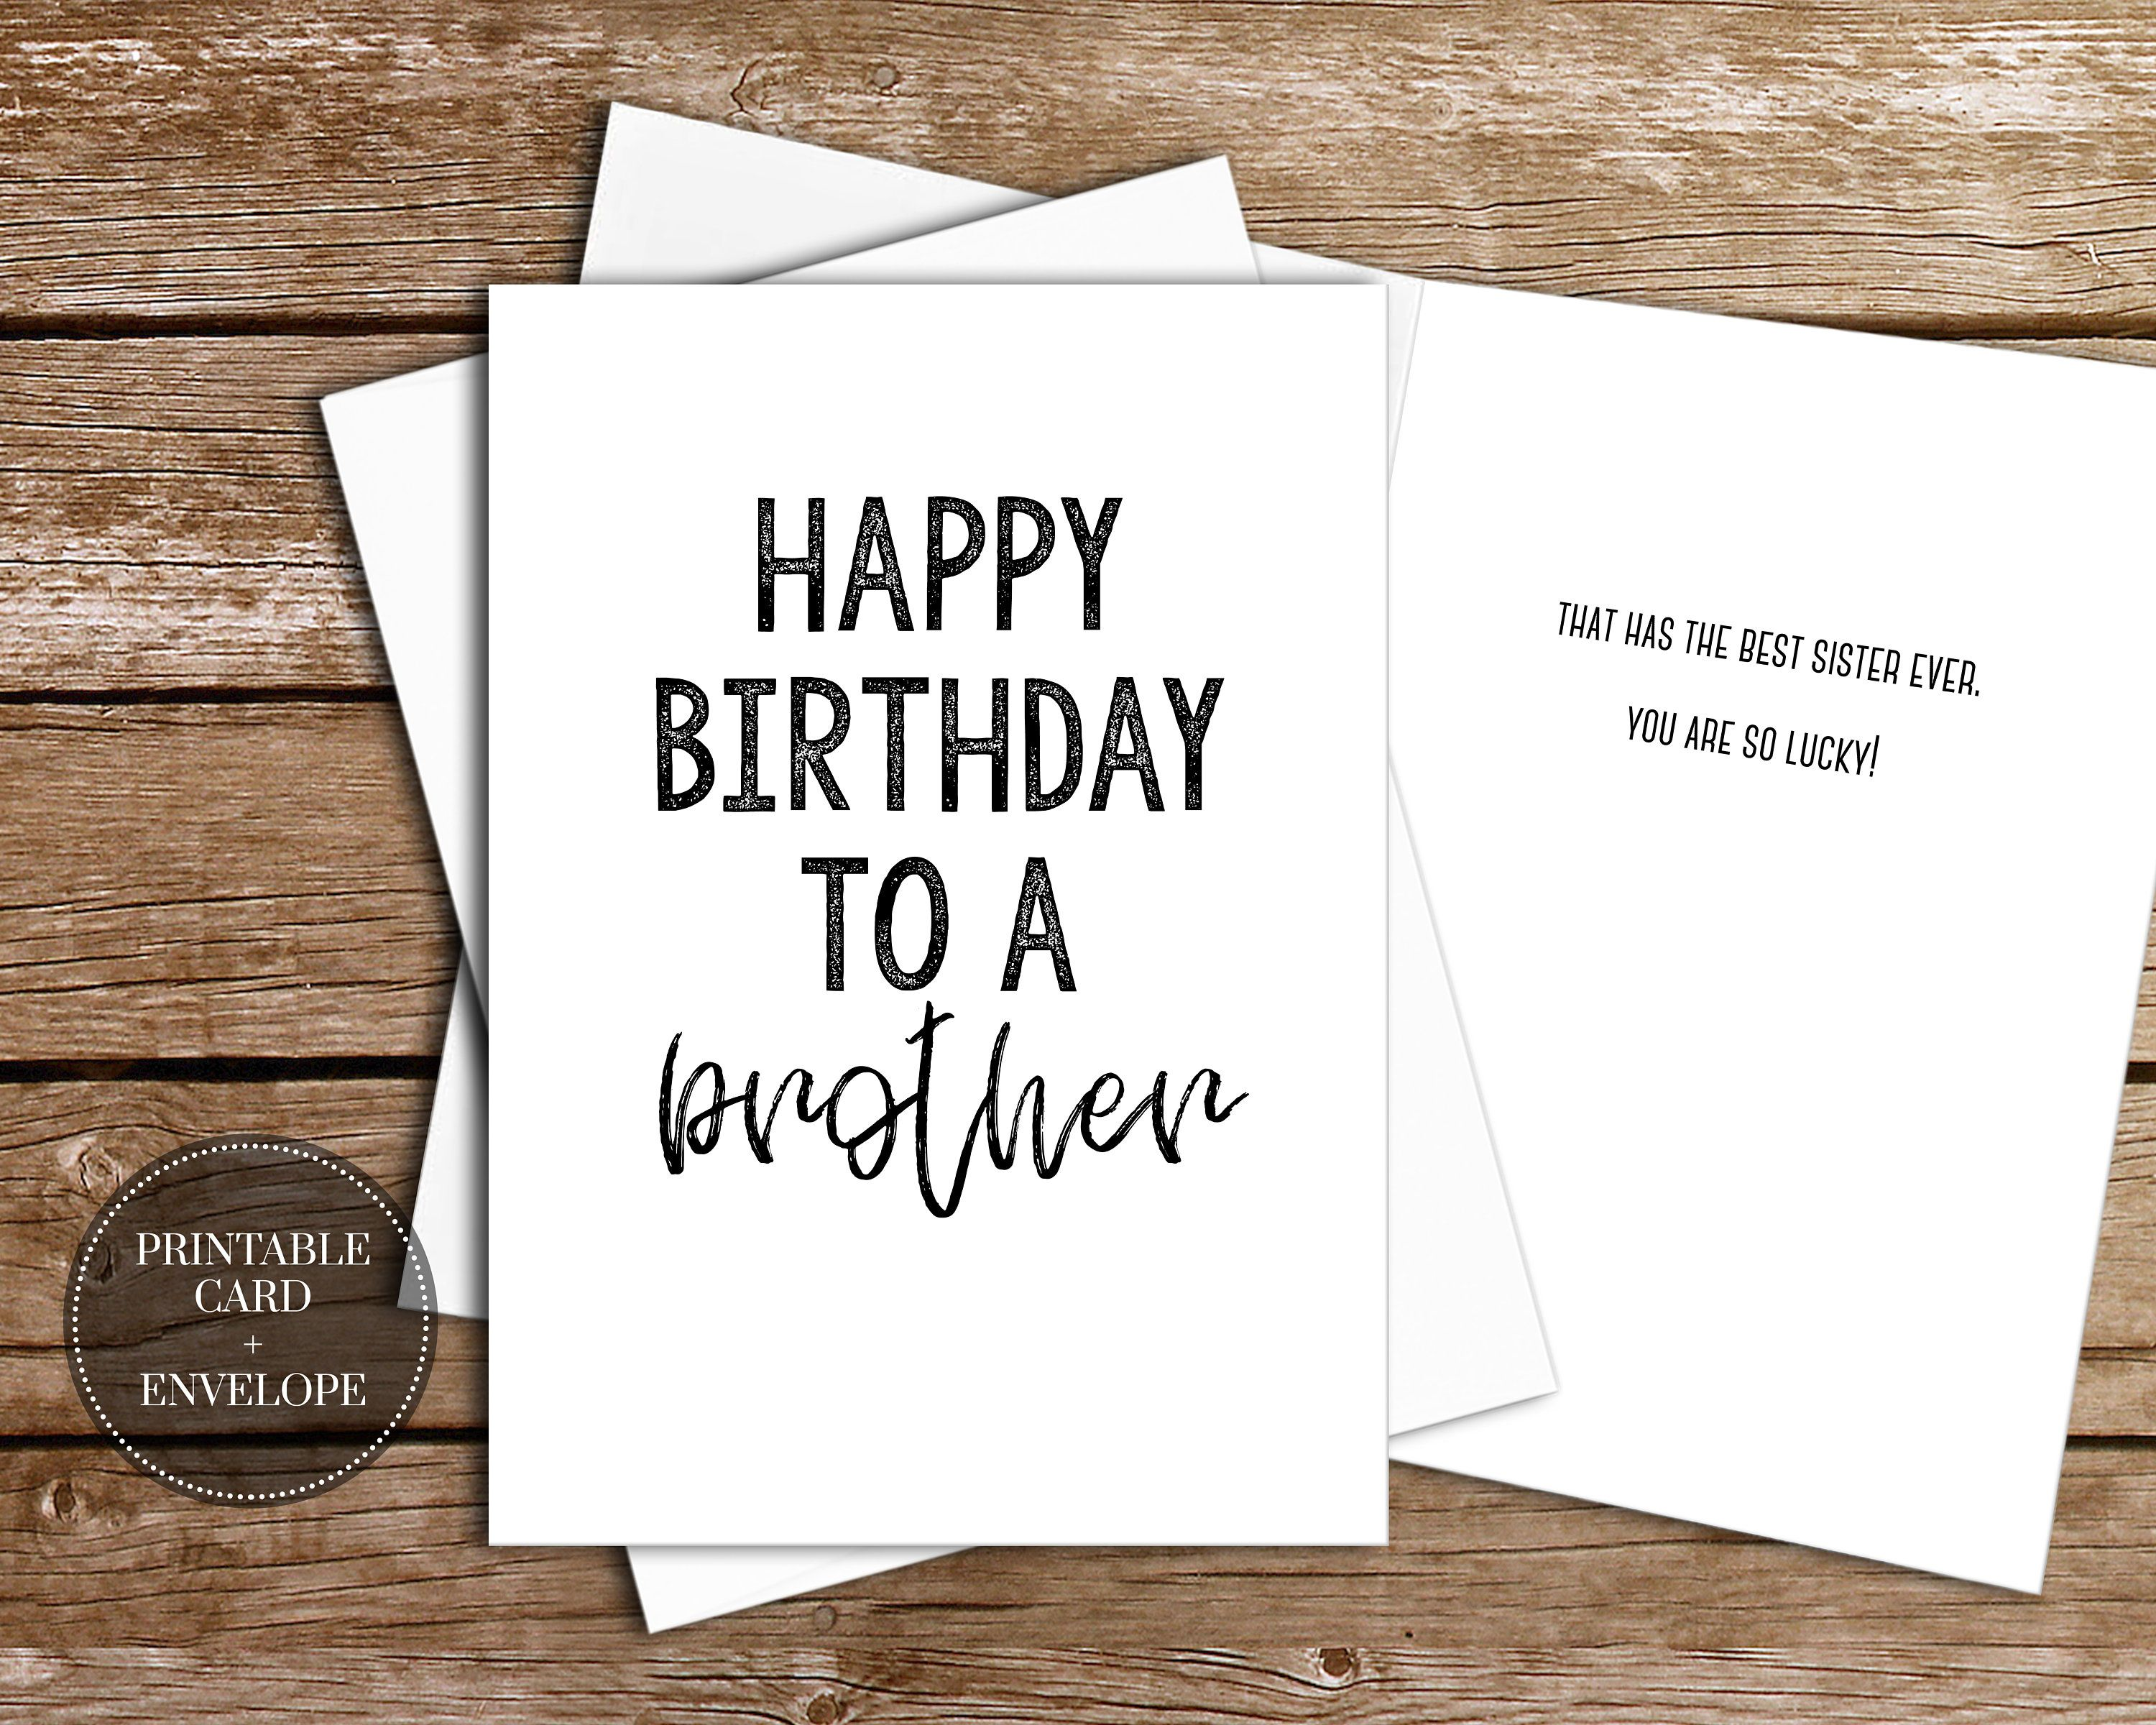 PRINTABLE Birthday Greeting Card INSTANT DOWNLOAD 5x7 Envelope Black And White Cute Funny Cheeky Brother Best Sister Ever Sibling Saying Him By